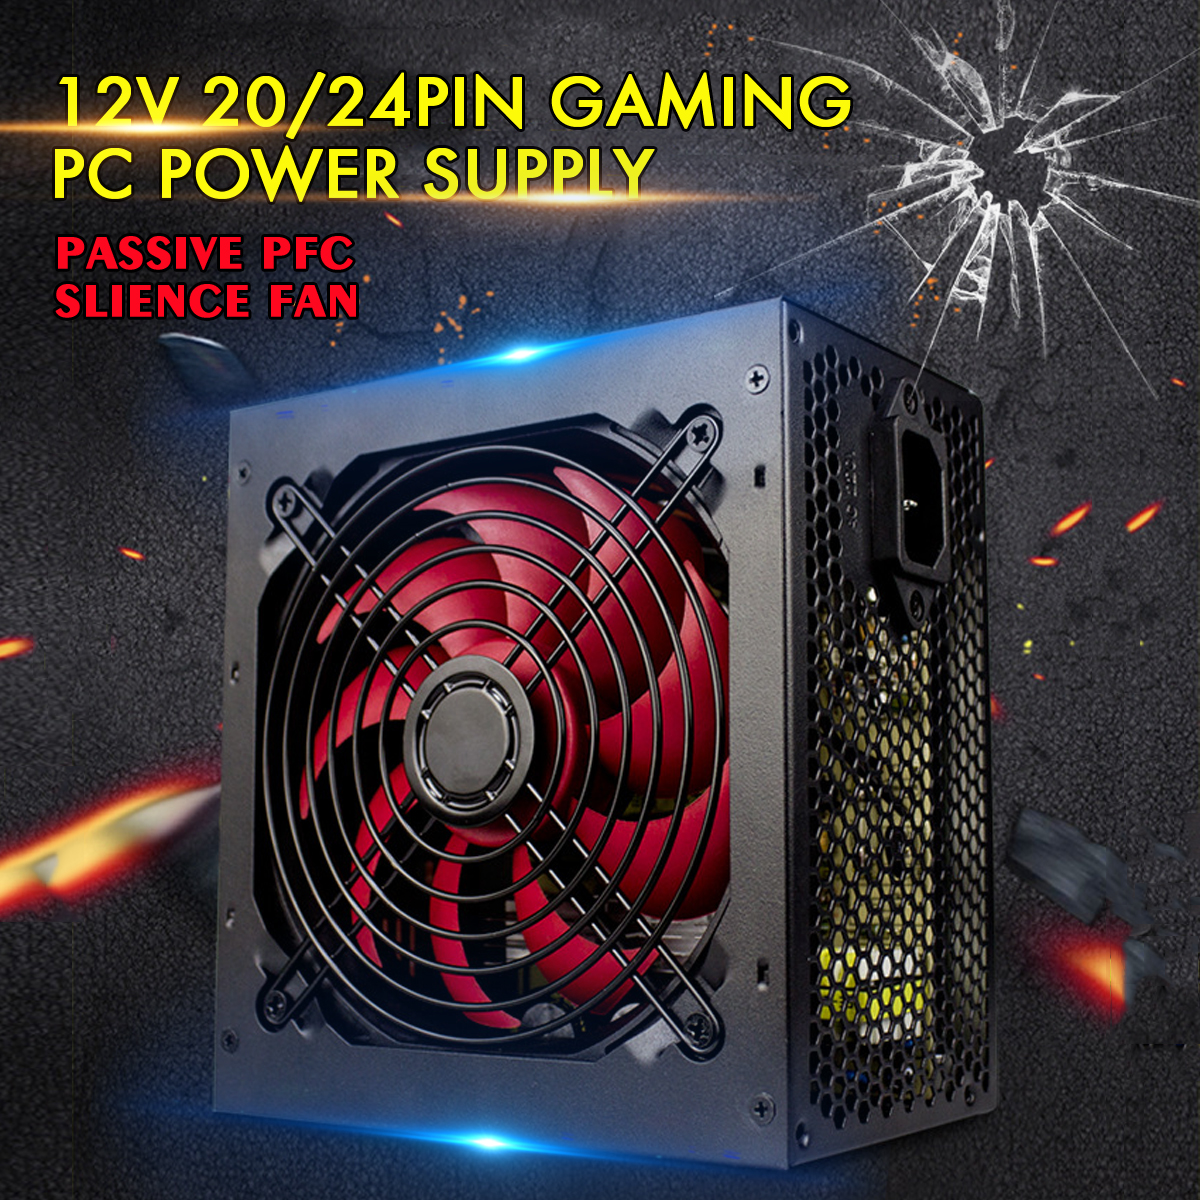 LEORY 650W Power Supply Passive PFC Silent Fan ATX 20/24pin 12V PC Computer SATA Gaming PC Power Supply